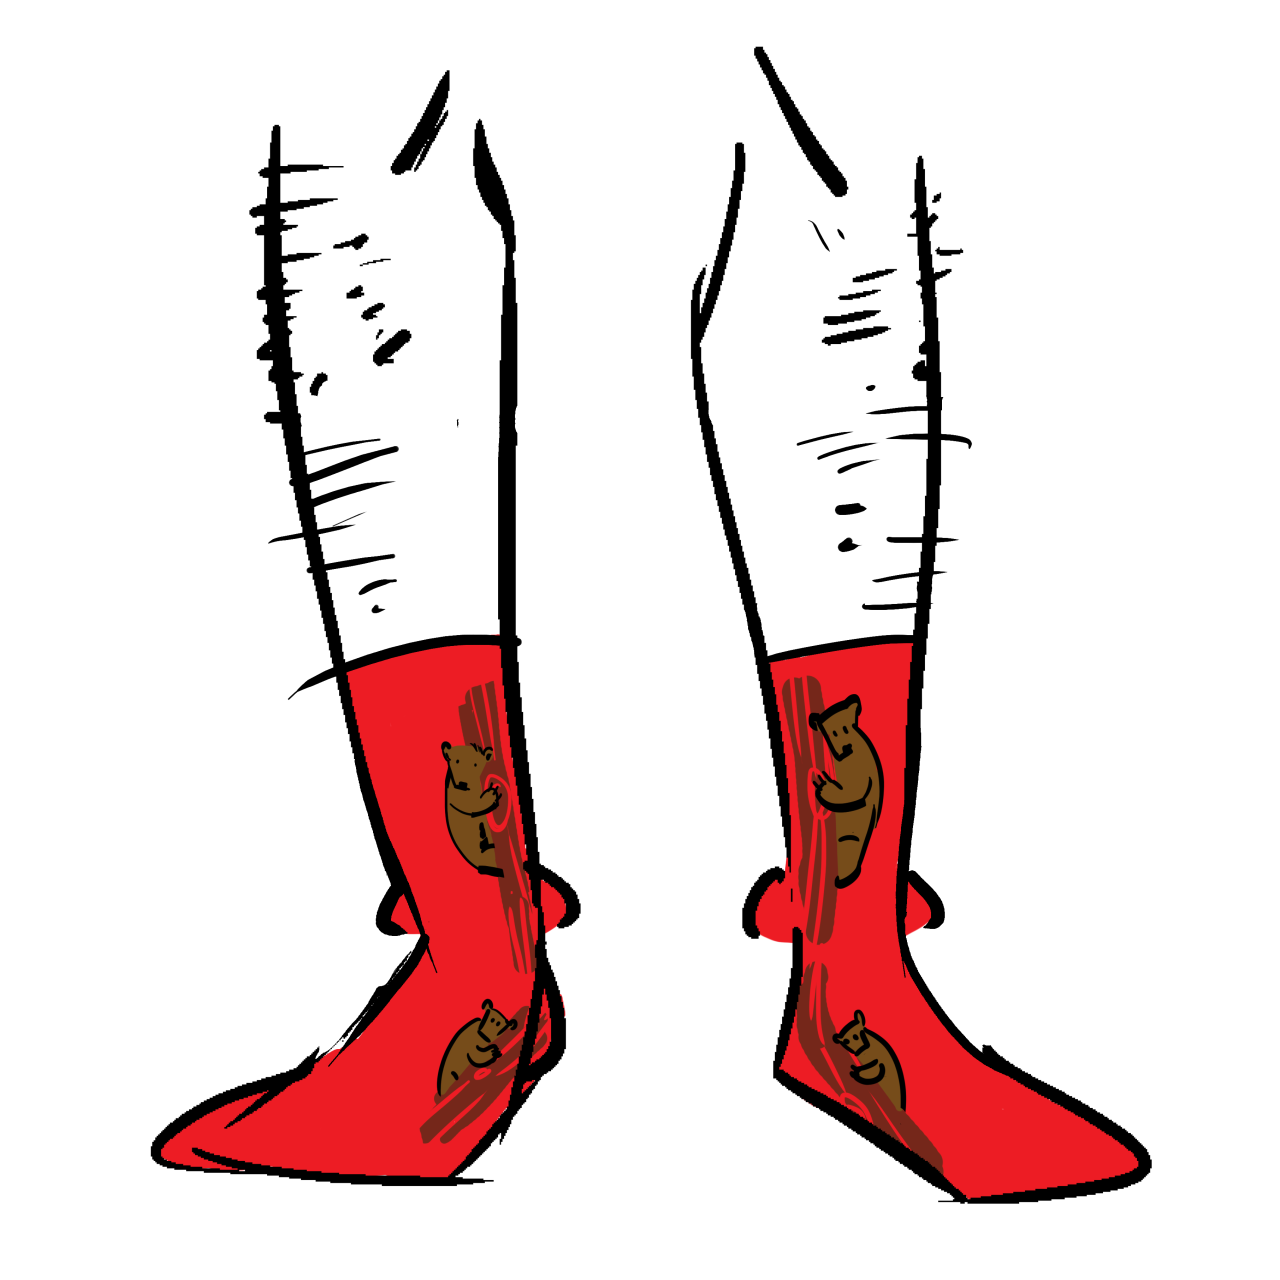 Red socks with bears in trees on them